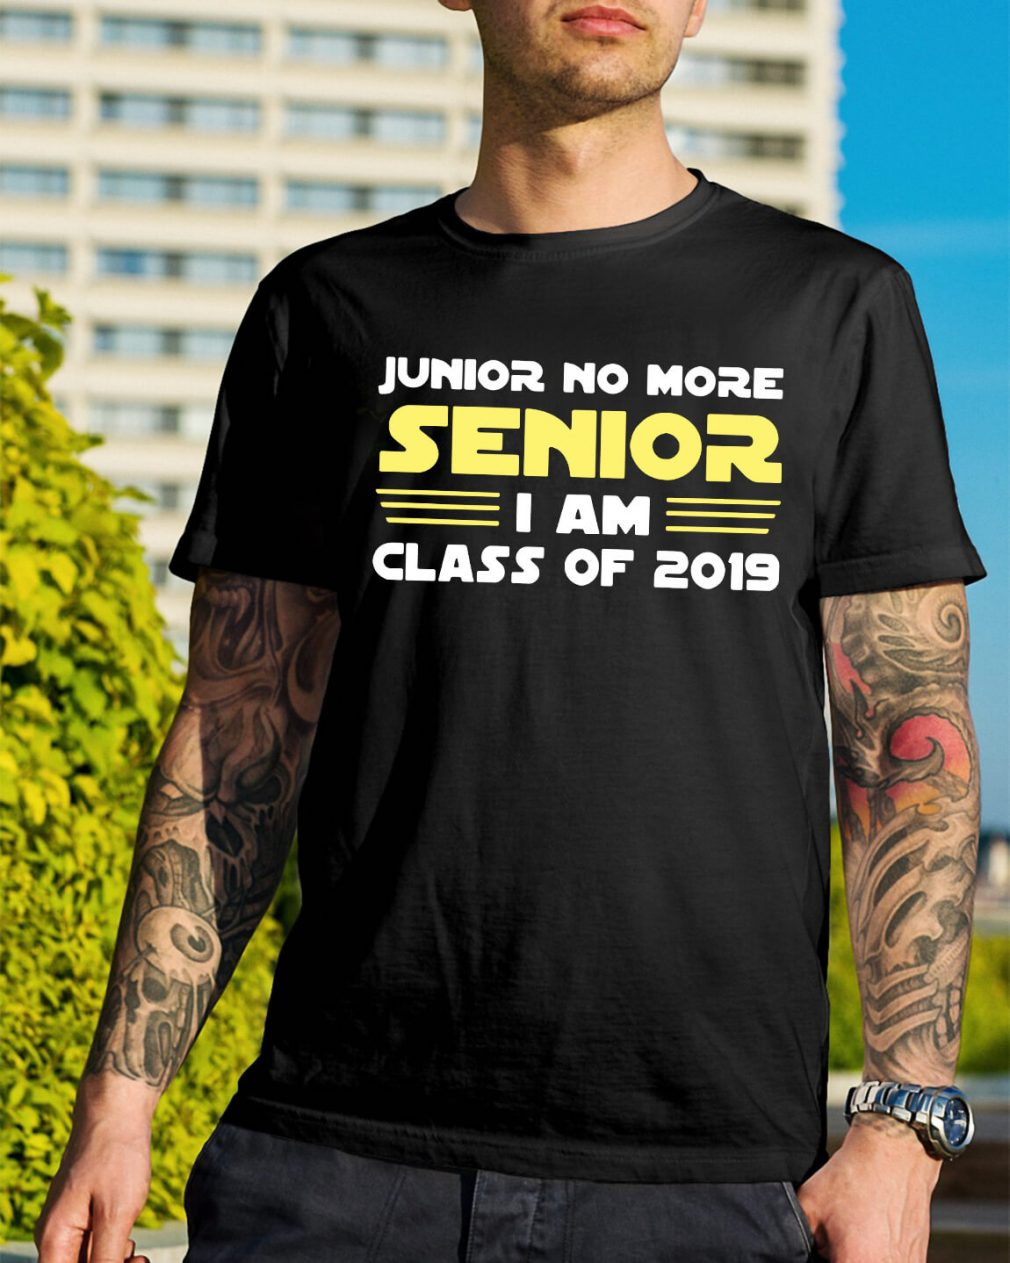 Junior no more senior I am class of 2019 shirt